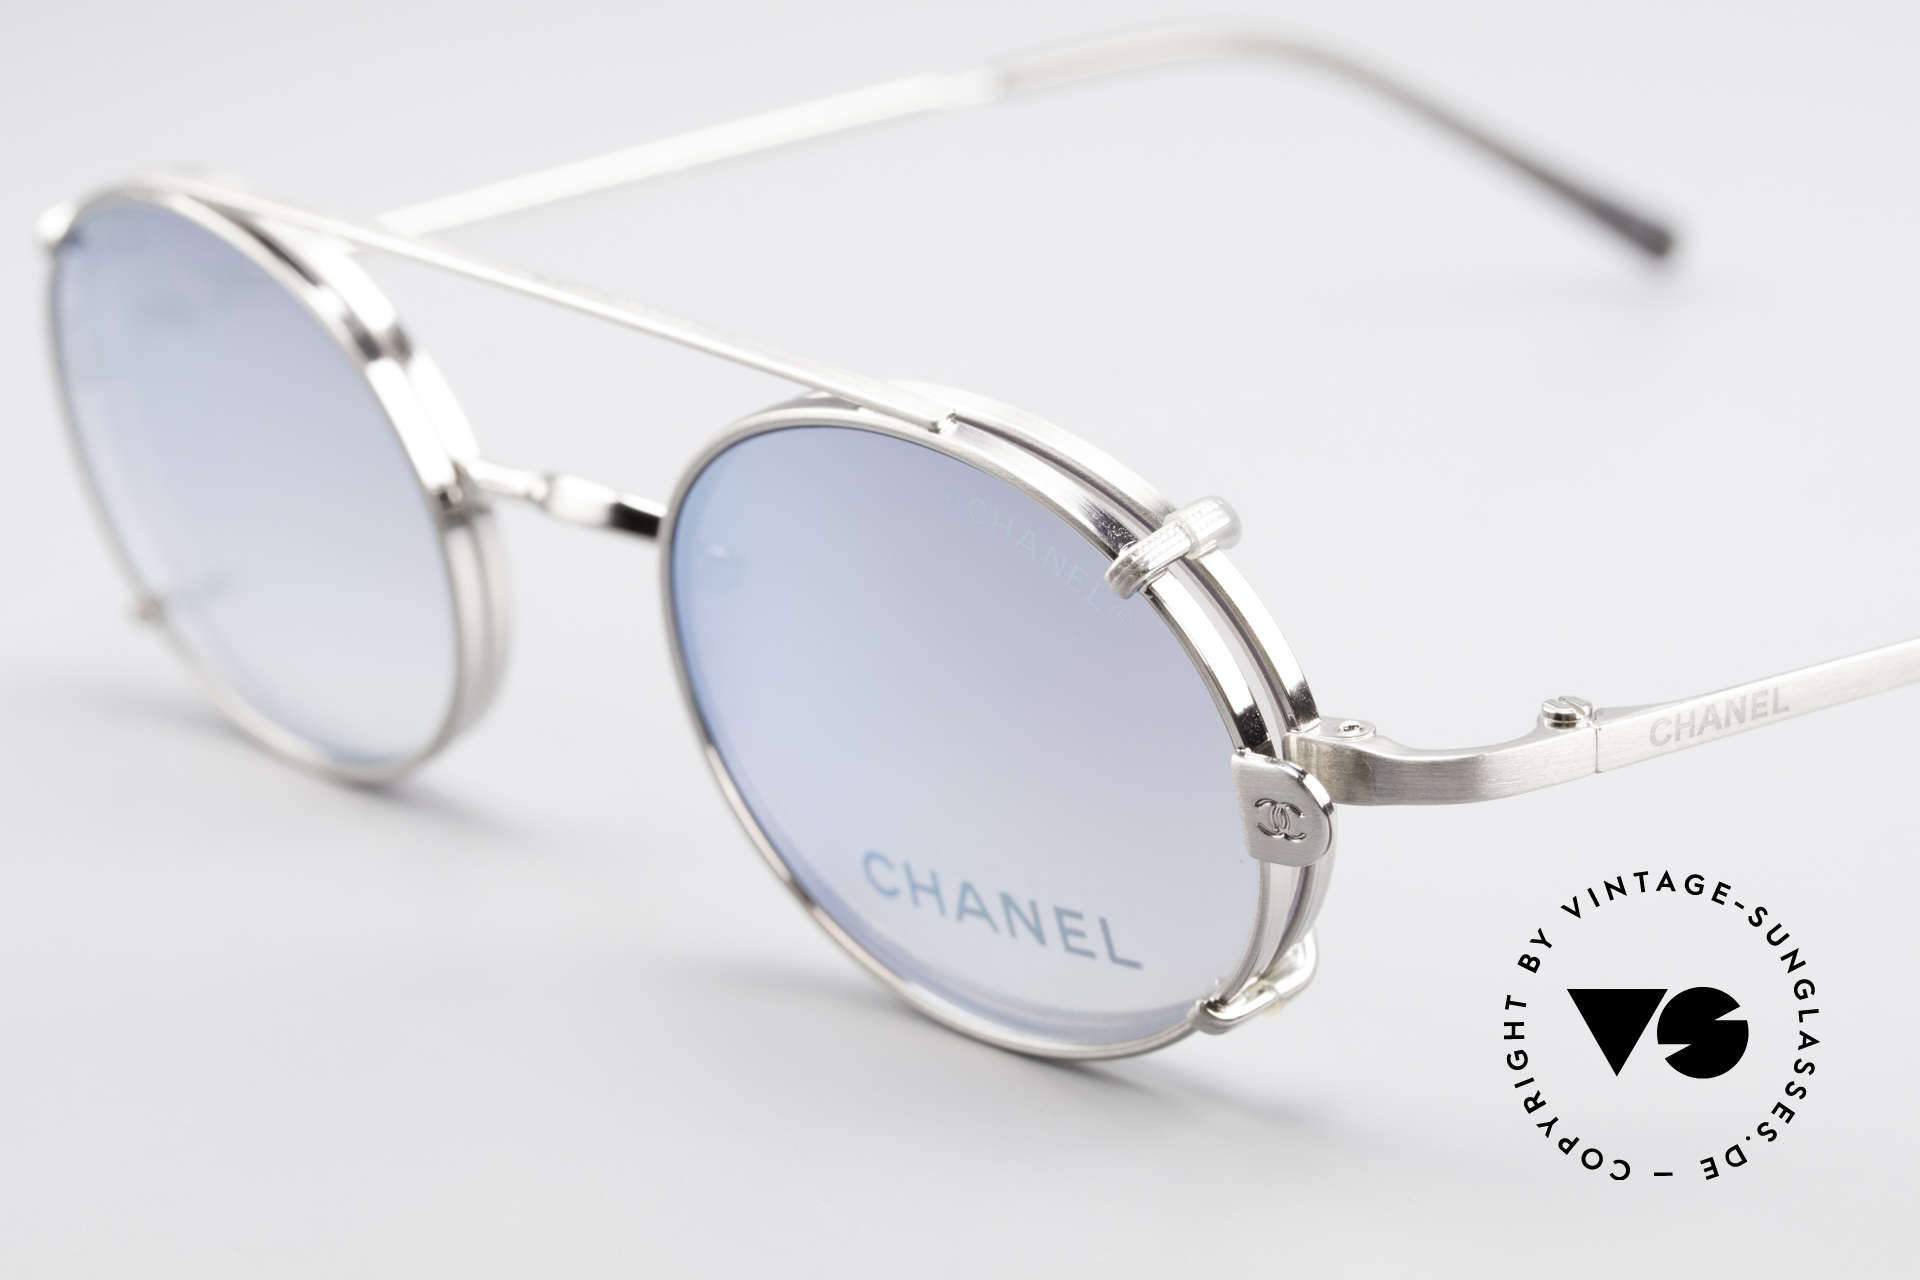 Chanel 2037 Oval Luxury Glasses Clip On, blue sun lenses are light mirrored; 100% UV protection, Made for Men and Women